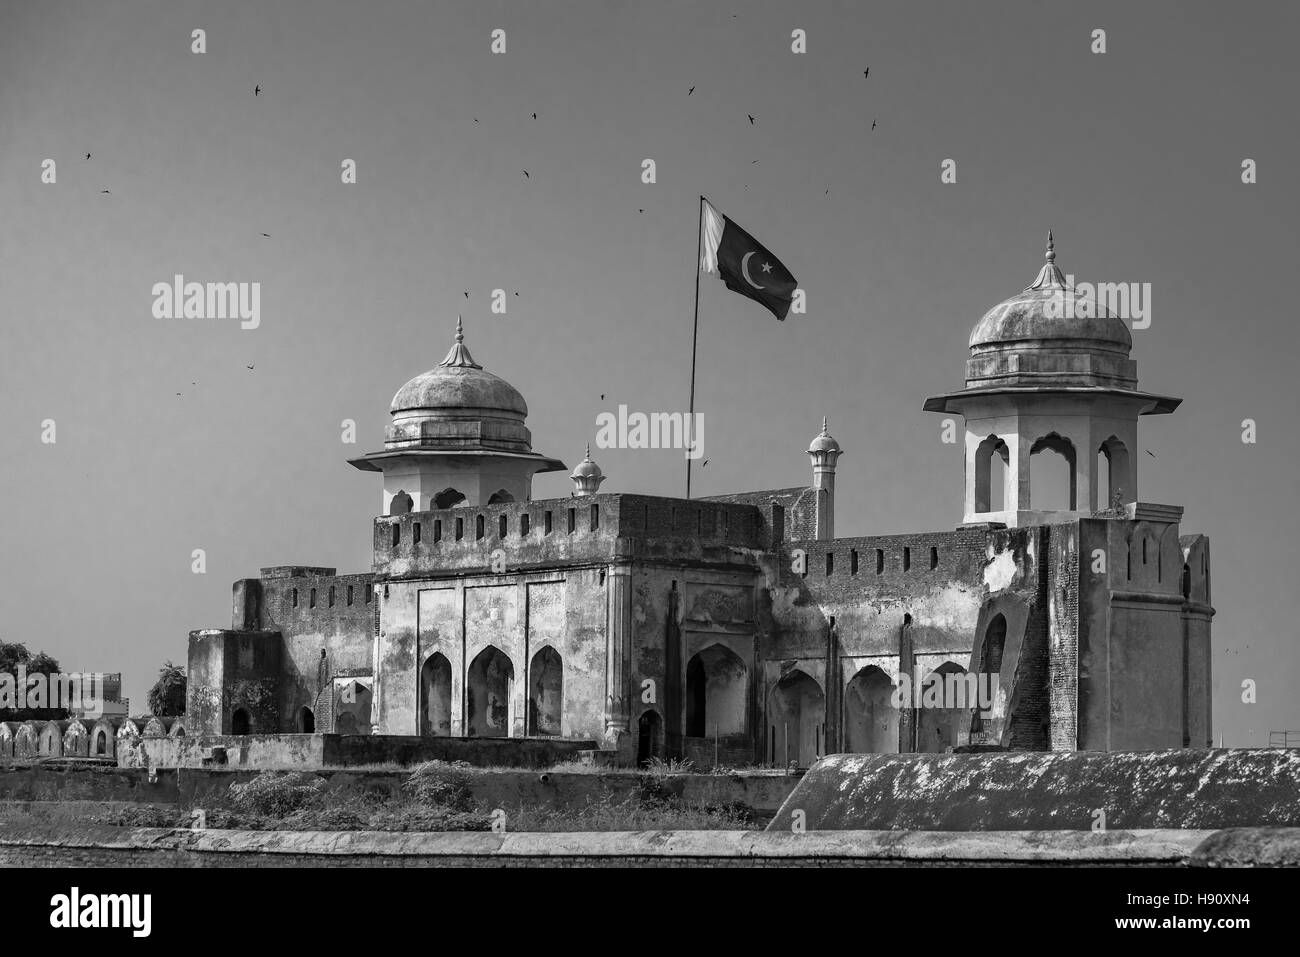 The Lahore Fort, locally referred to as the Shahi qila  is a citadel in the city of Lahore, Punjab, Pakistan. - Stock Image